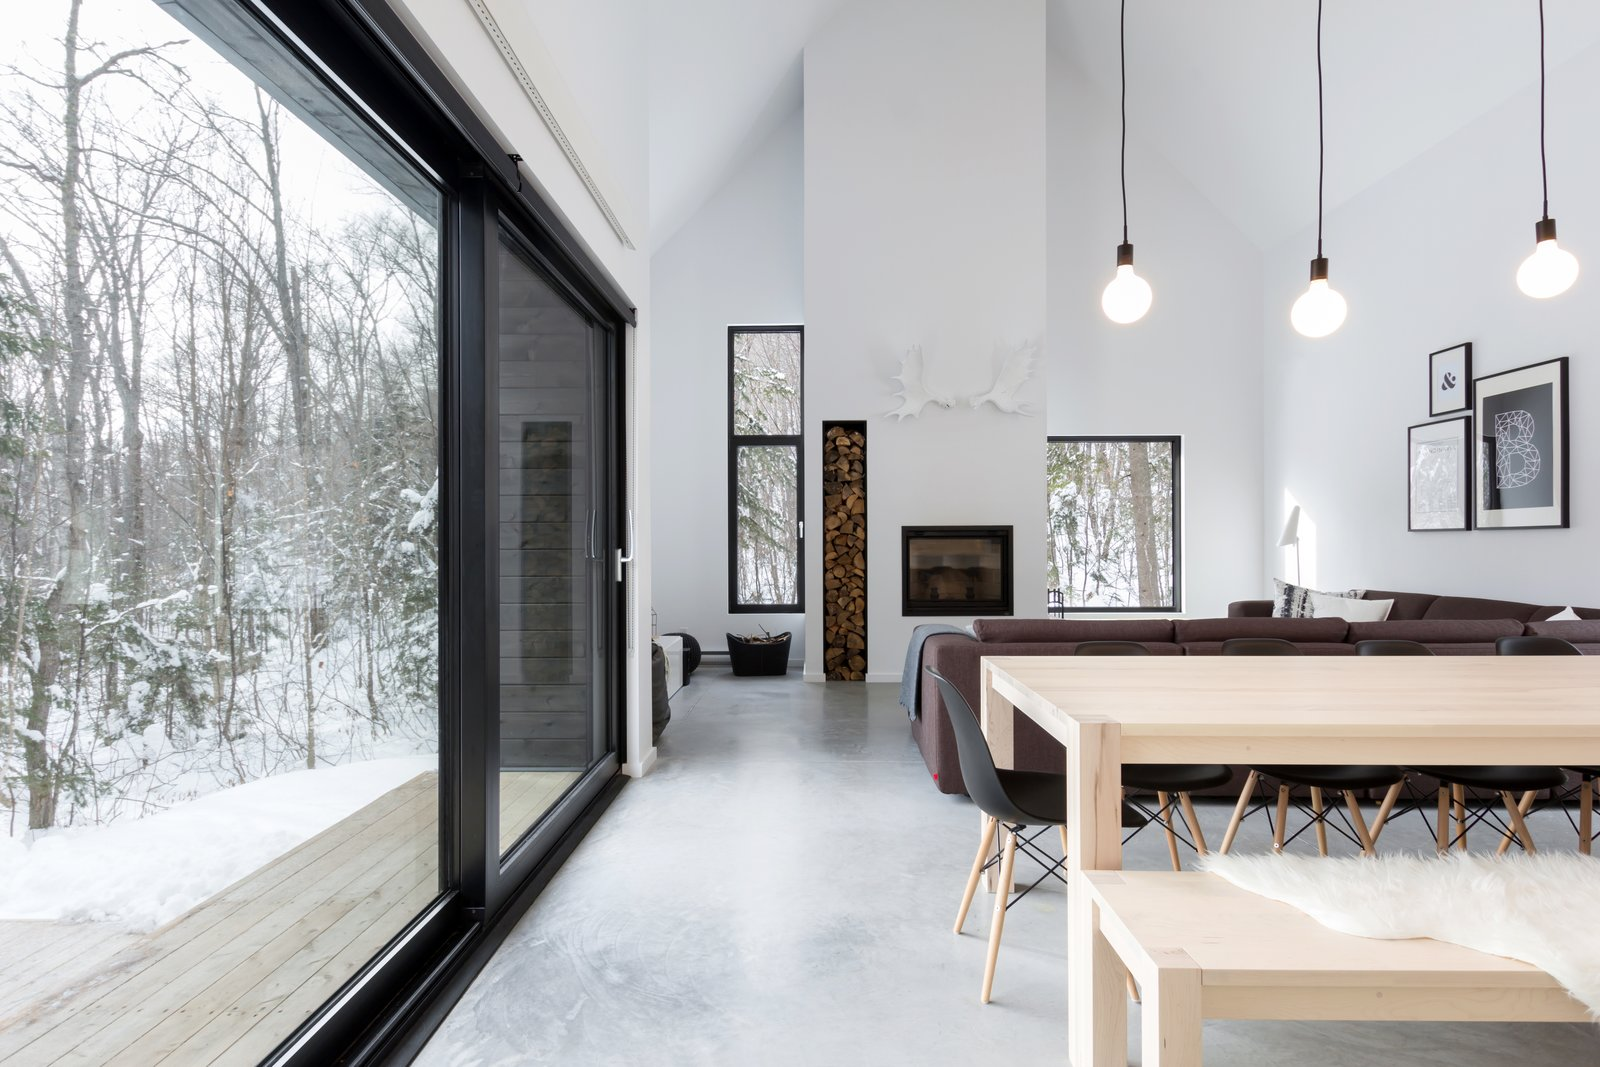 """Living Room, Concrete Floor, Pendant Lighting, and Wood Burning Fireplace Throughout the design, the site was quickly revealed as a powerful element of the project. By choosing carefully the location and size of each window, external views were highlighted, and the atmosphere created by natural light is pleasant throughout the whole day. As for the position of the large sliding door, it was """" pushed """" toward the main interior open space with the intention of subtly separating the internal functions while creating a outside protected space. All these intentions ultimately aim to capture the essence of this project: the surrounding nature and wildlife.  Photos from Reno ideas"""